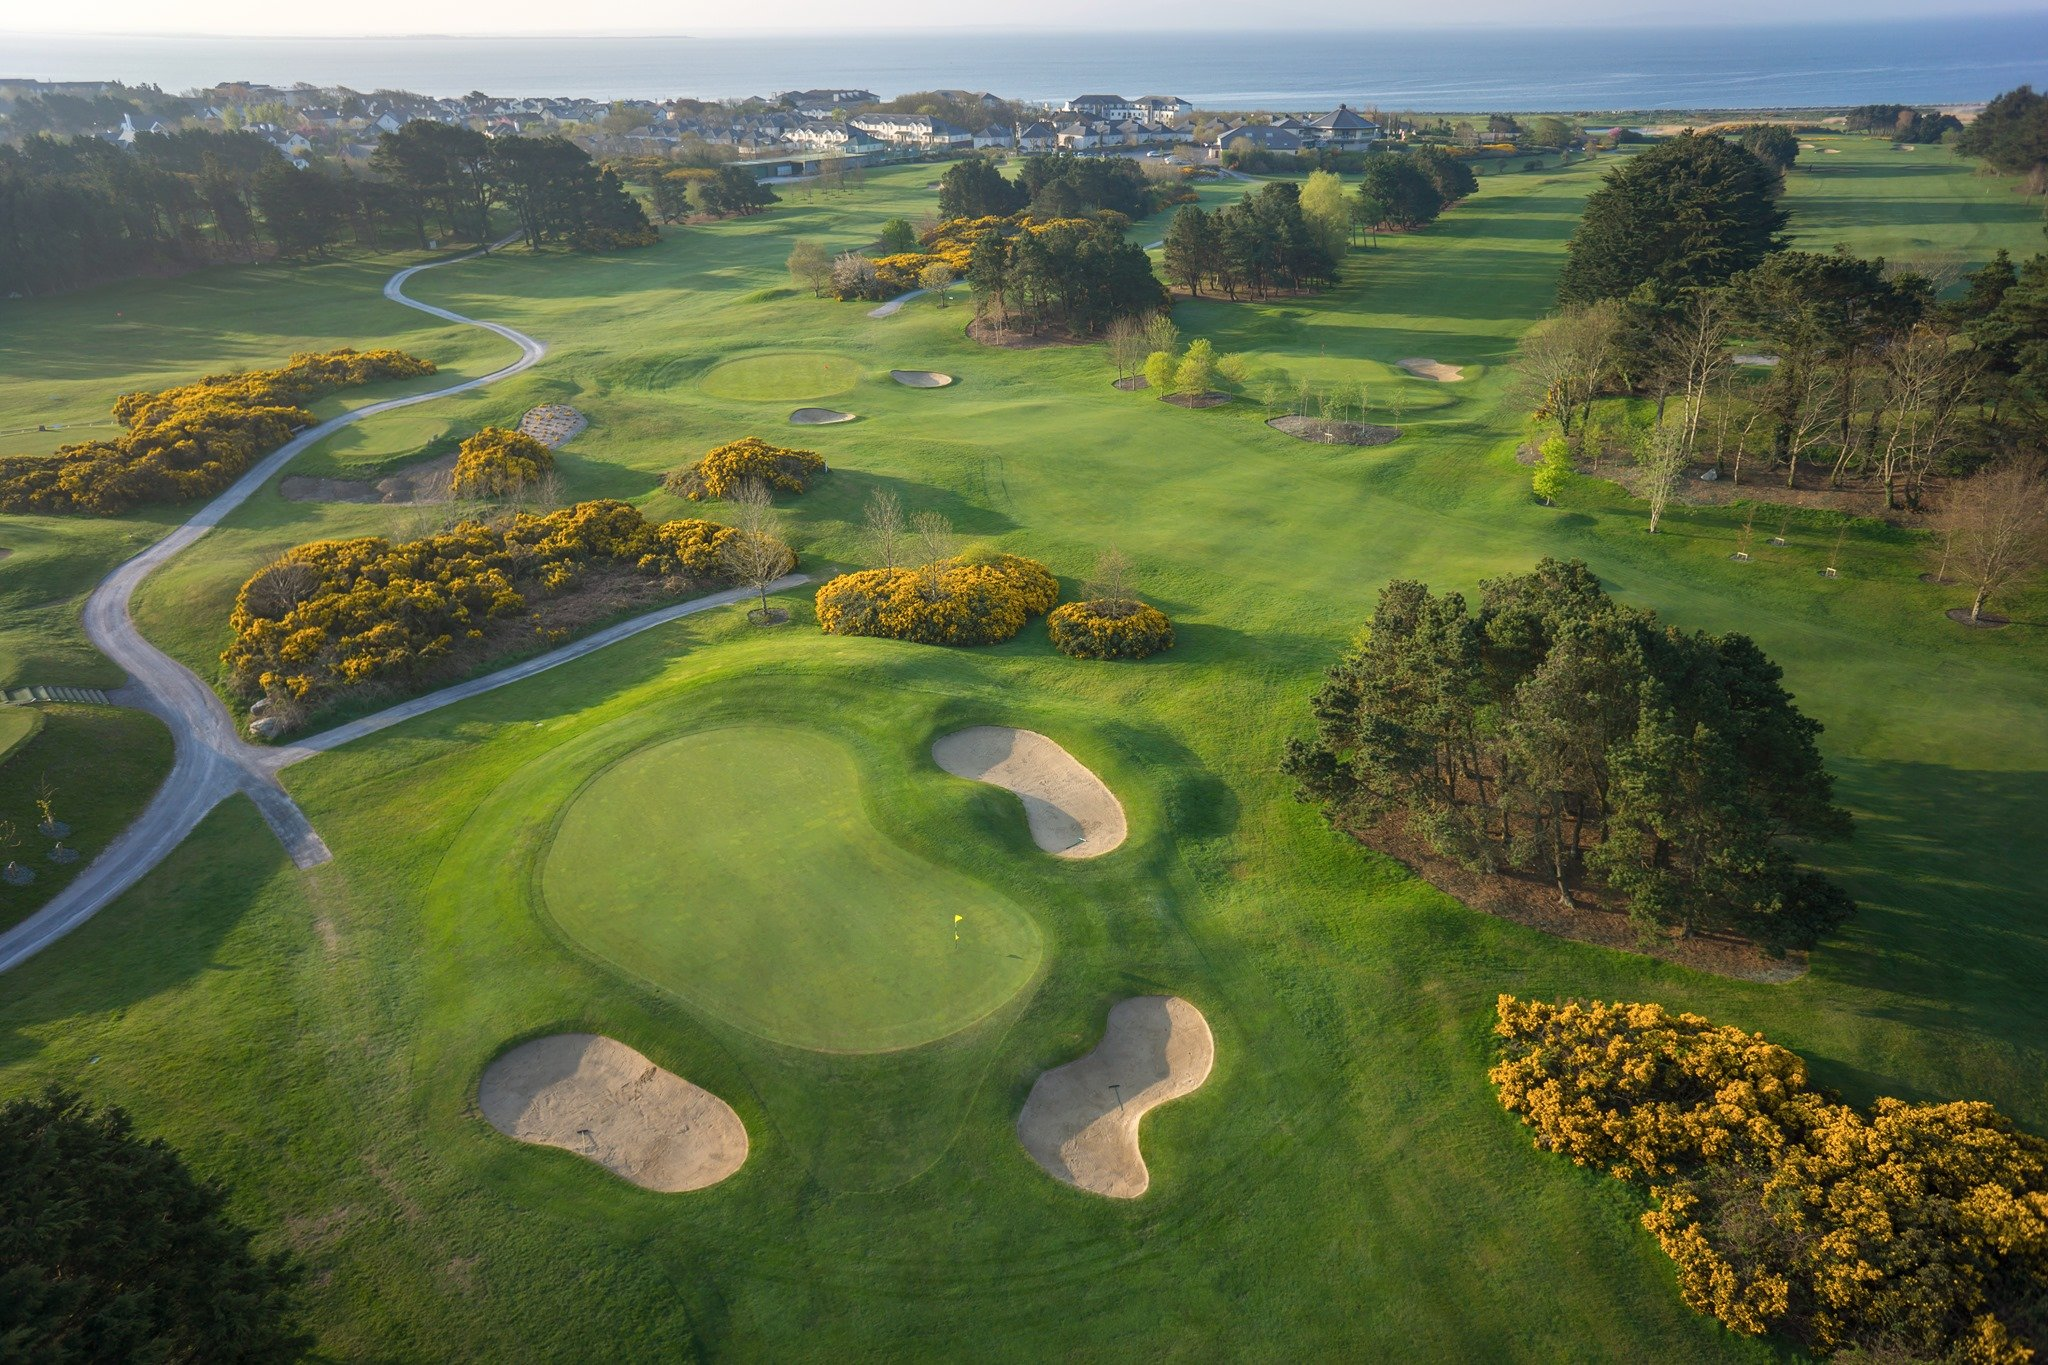 Galway Golf Club Aerial Photo of Hole - Visit Galway